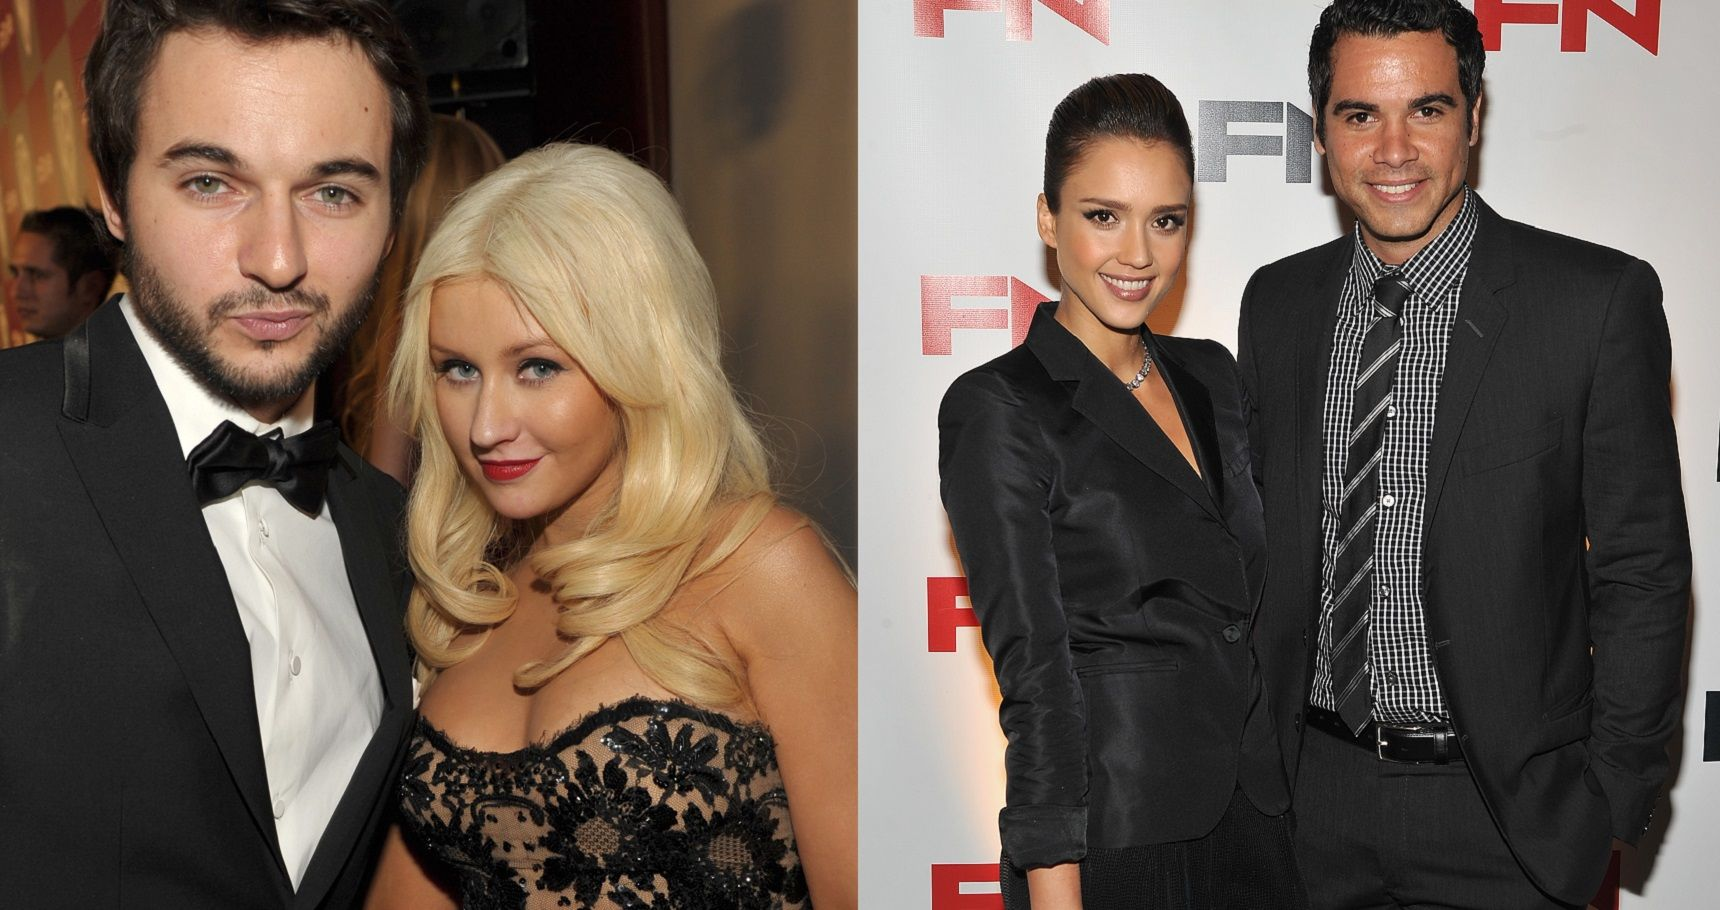 15 Of The Hottest Female Celebrities Who Have Dated Average Joes